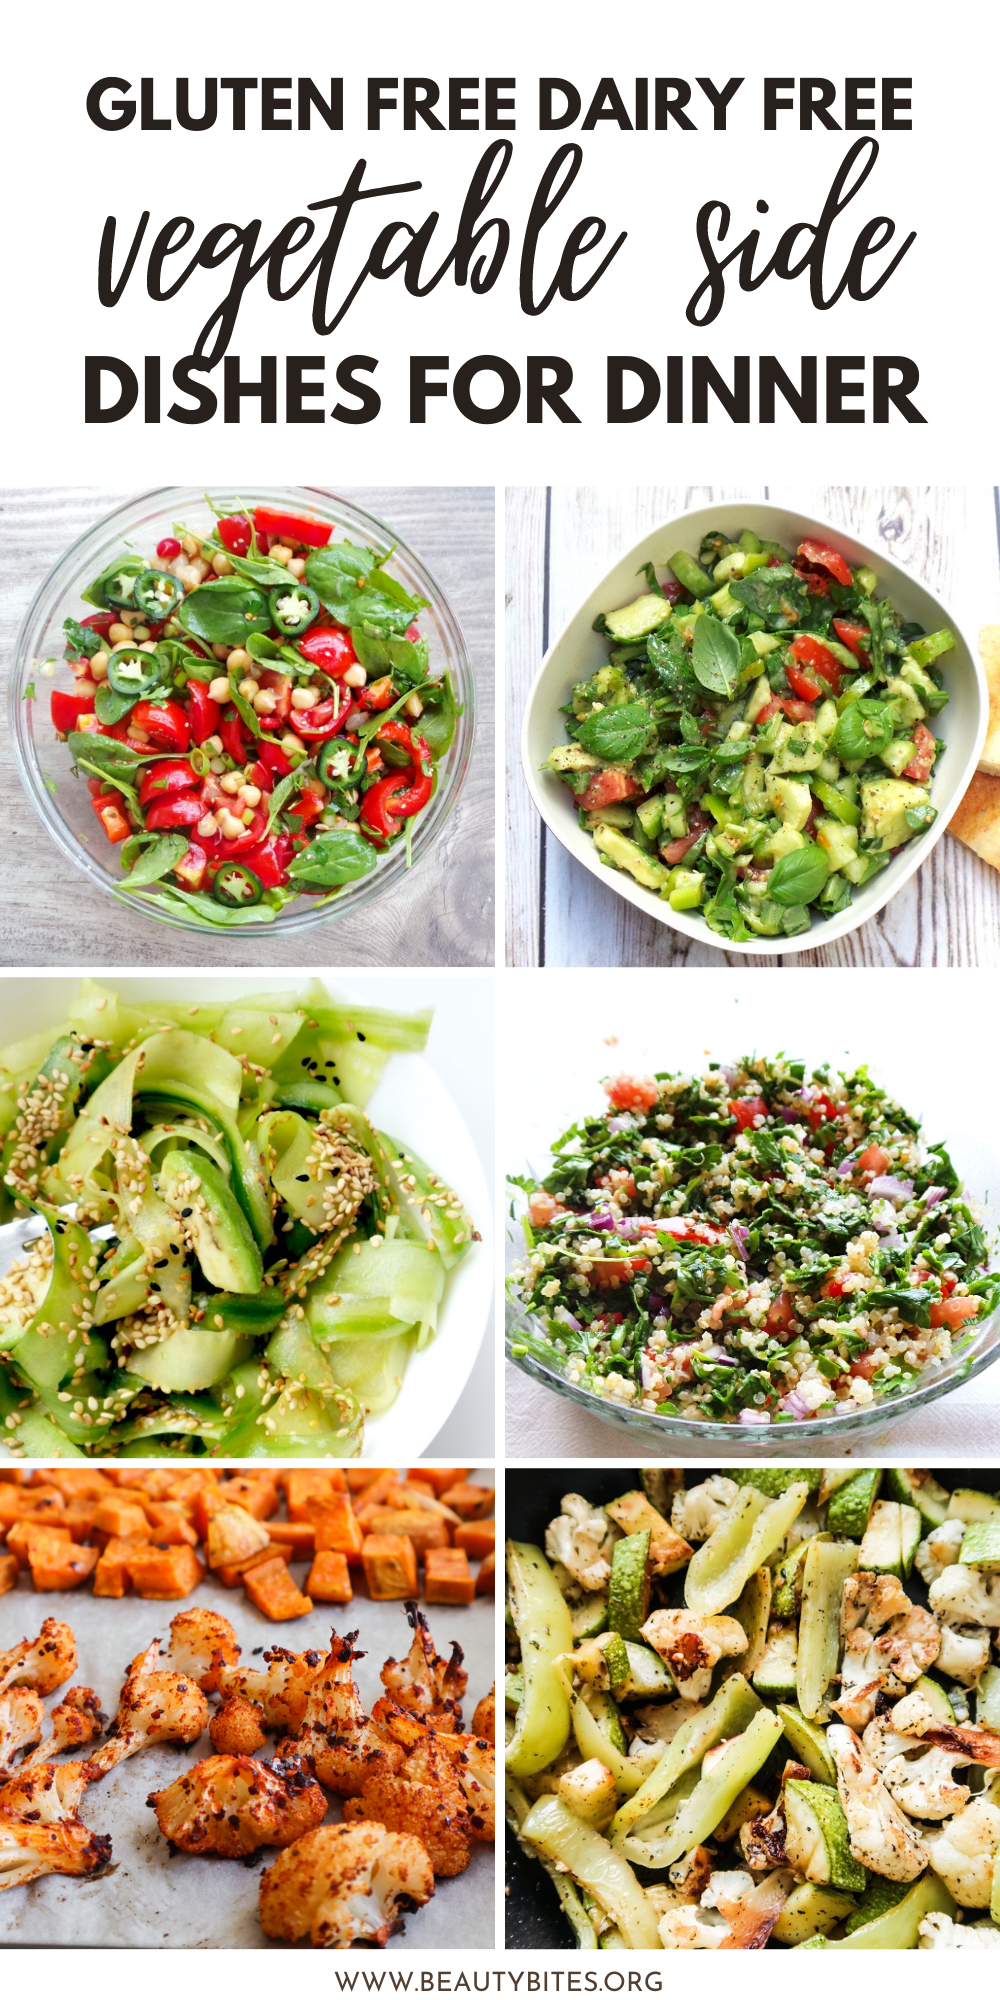 A collection of delicious quick and easy healthy vegetable recipes to eat on a dairy free gluten free diet. Enjoy these vegetable side dishes at dinner!